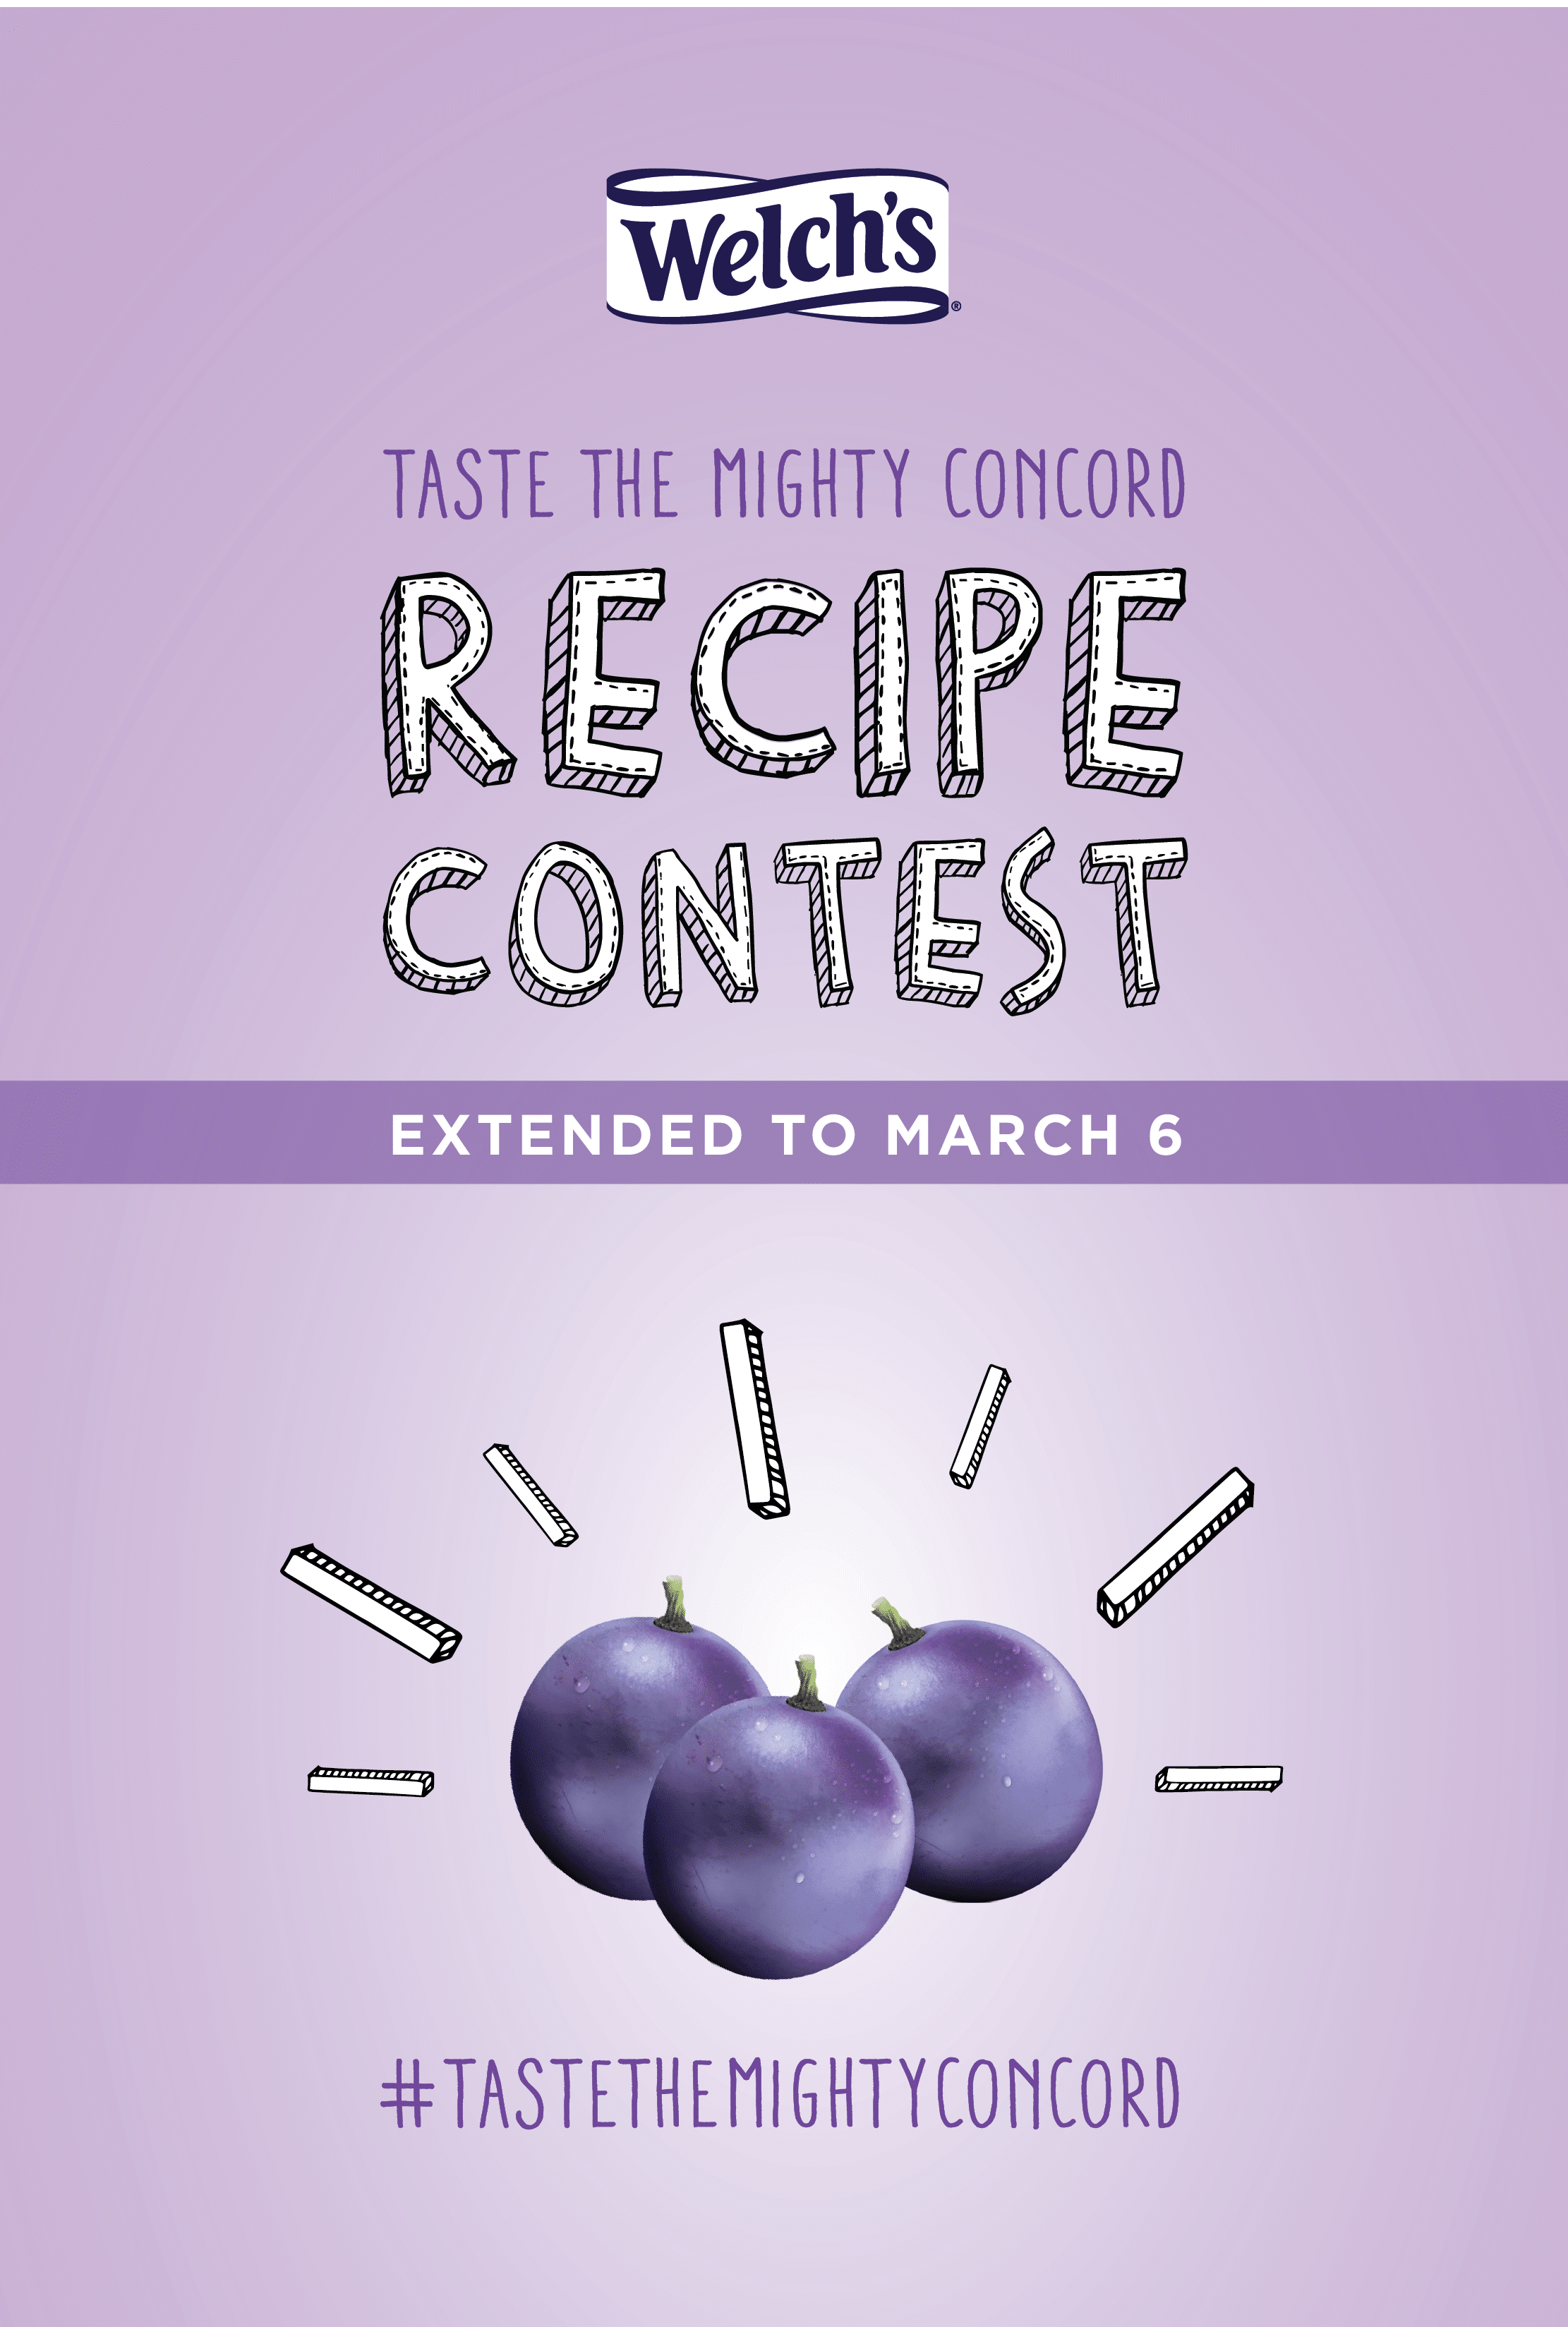 Celebrate Heart Month with the Concord grape! Throughout February, enter your heart-healthy recipes into Welch's Taste the Mighty Concord Recipe Contest! Get all the details @jlevinsonrd!